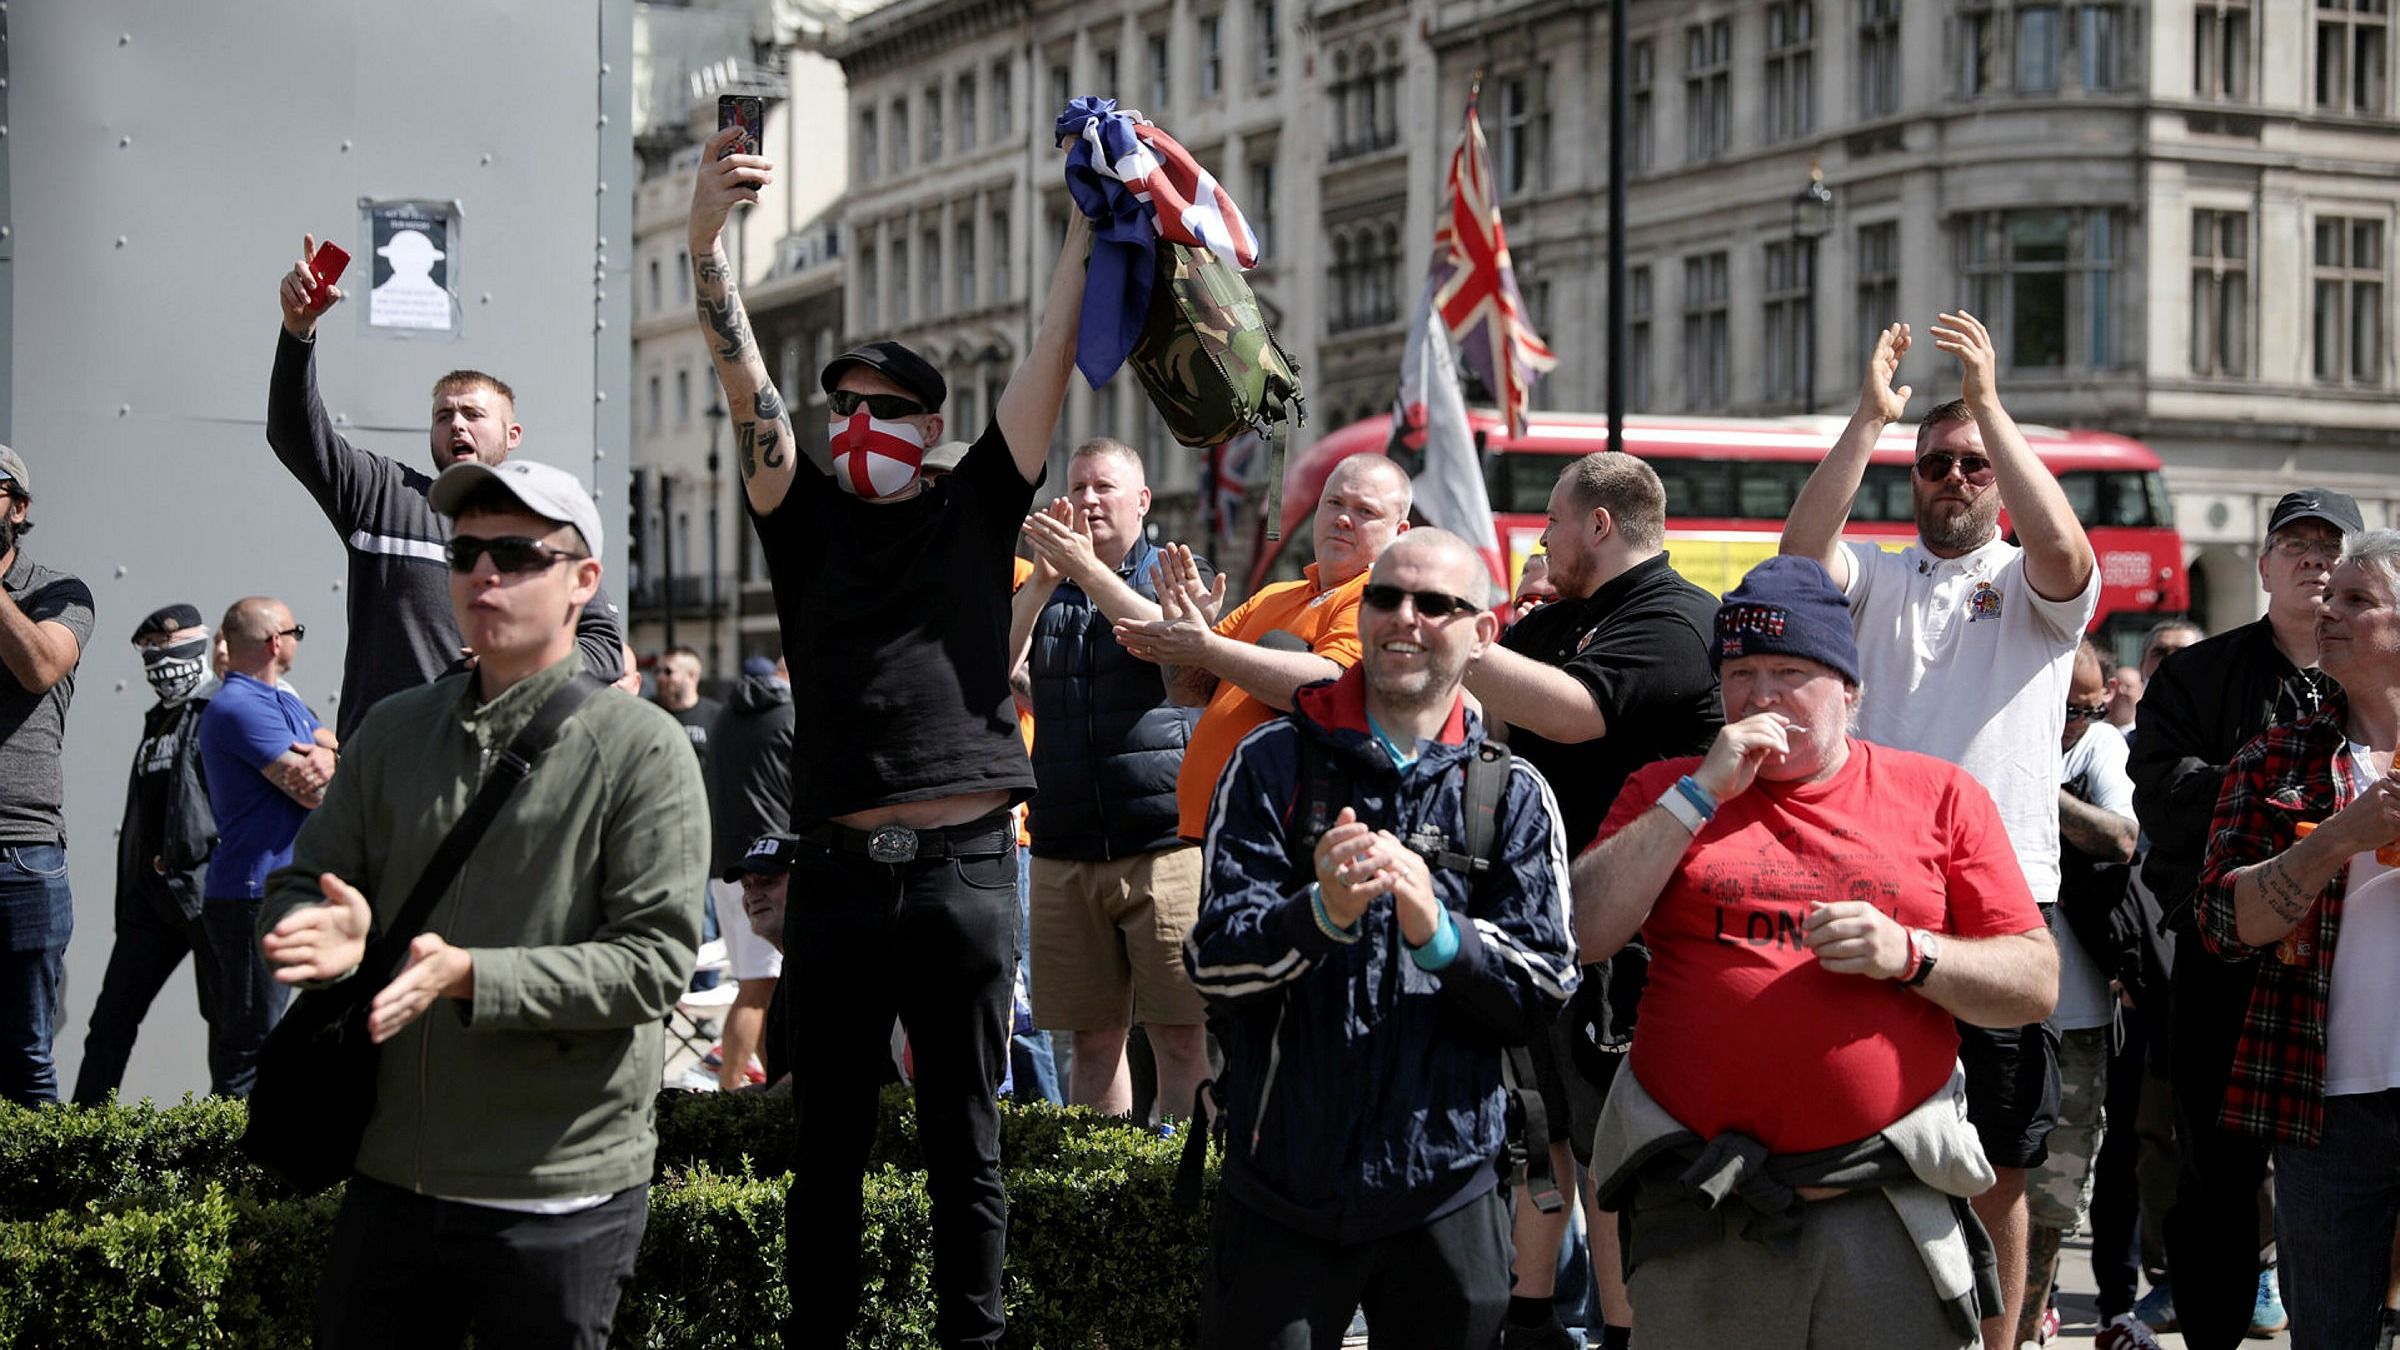 Rightwing protesters clash with police in central London ...